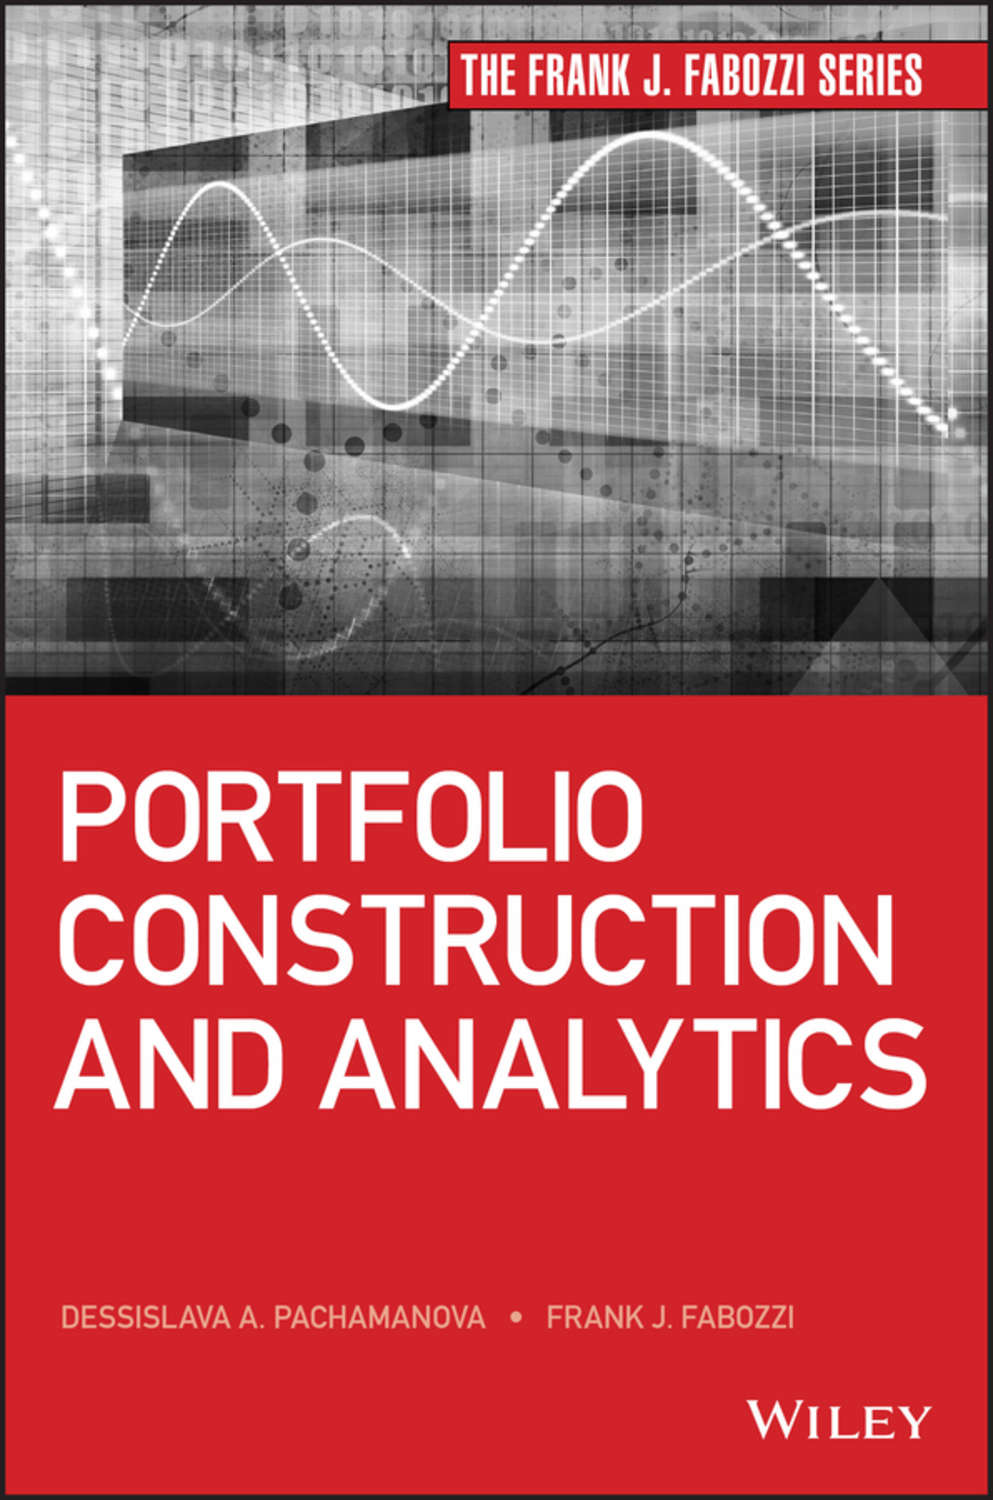 portfolio construction Project report on portfolio construction - download as word doc (doc / docx), pdf file (pdf), text file (txt) or read online.